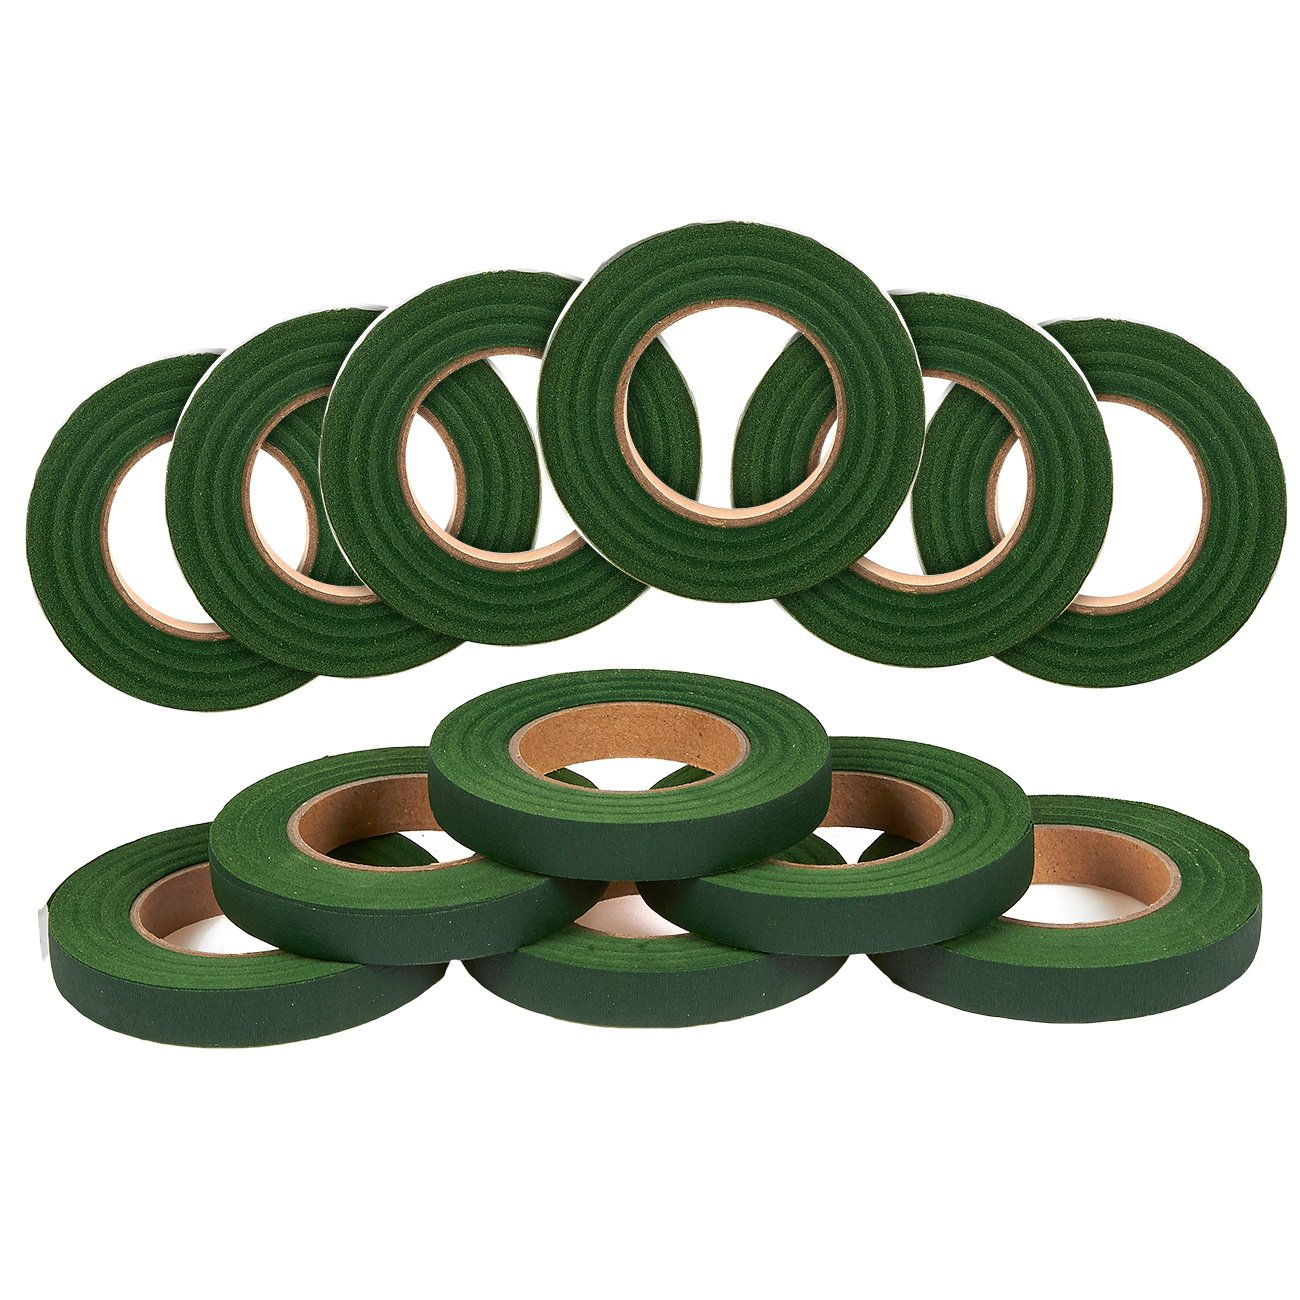 Pack of 12 Floral Tape - Florist Tape - Create Beautiful Bouquets - 360 Yards Total - Value Pack, 1/2 Inch x 30 Yards, Dark Green Juvale